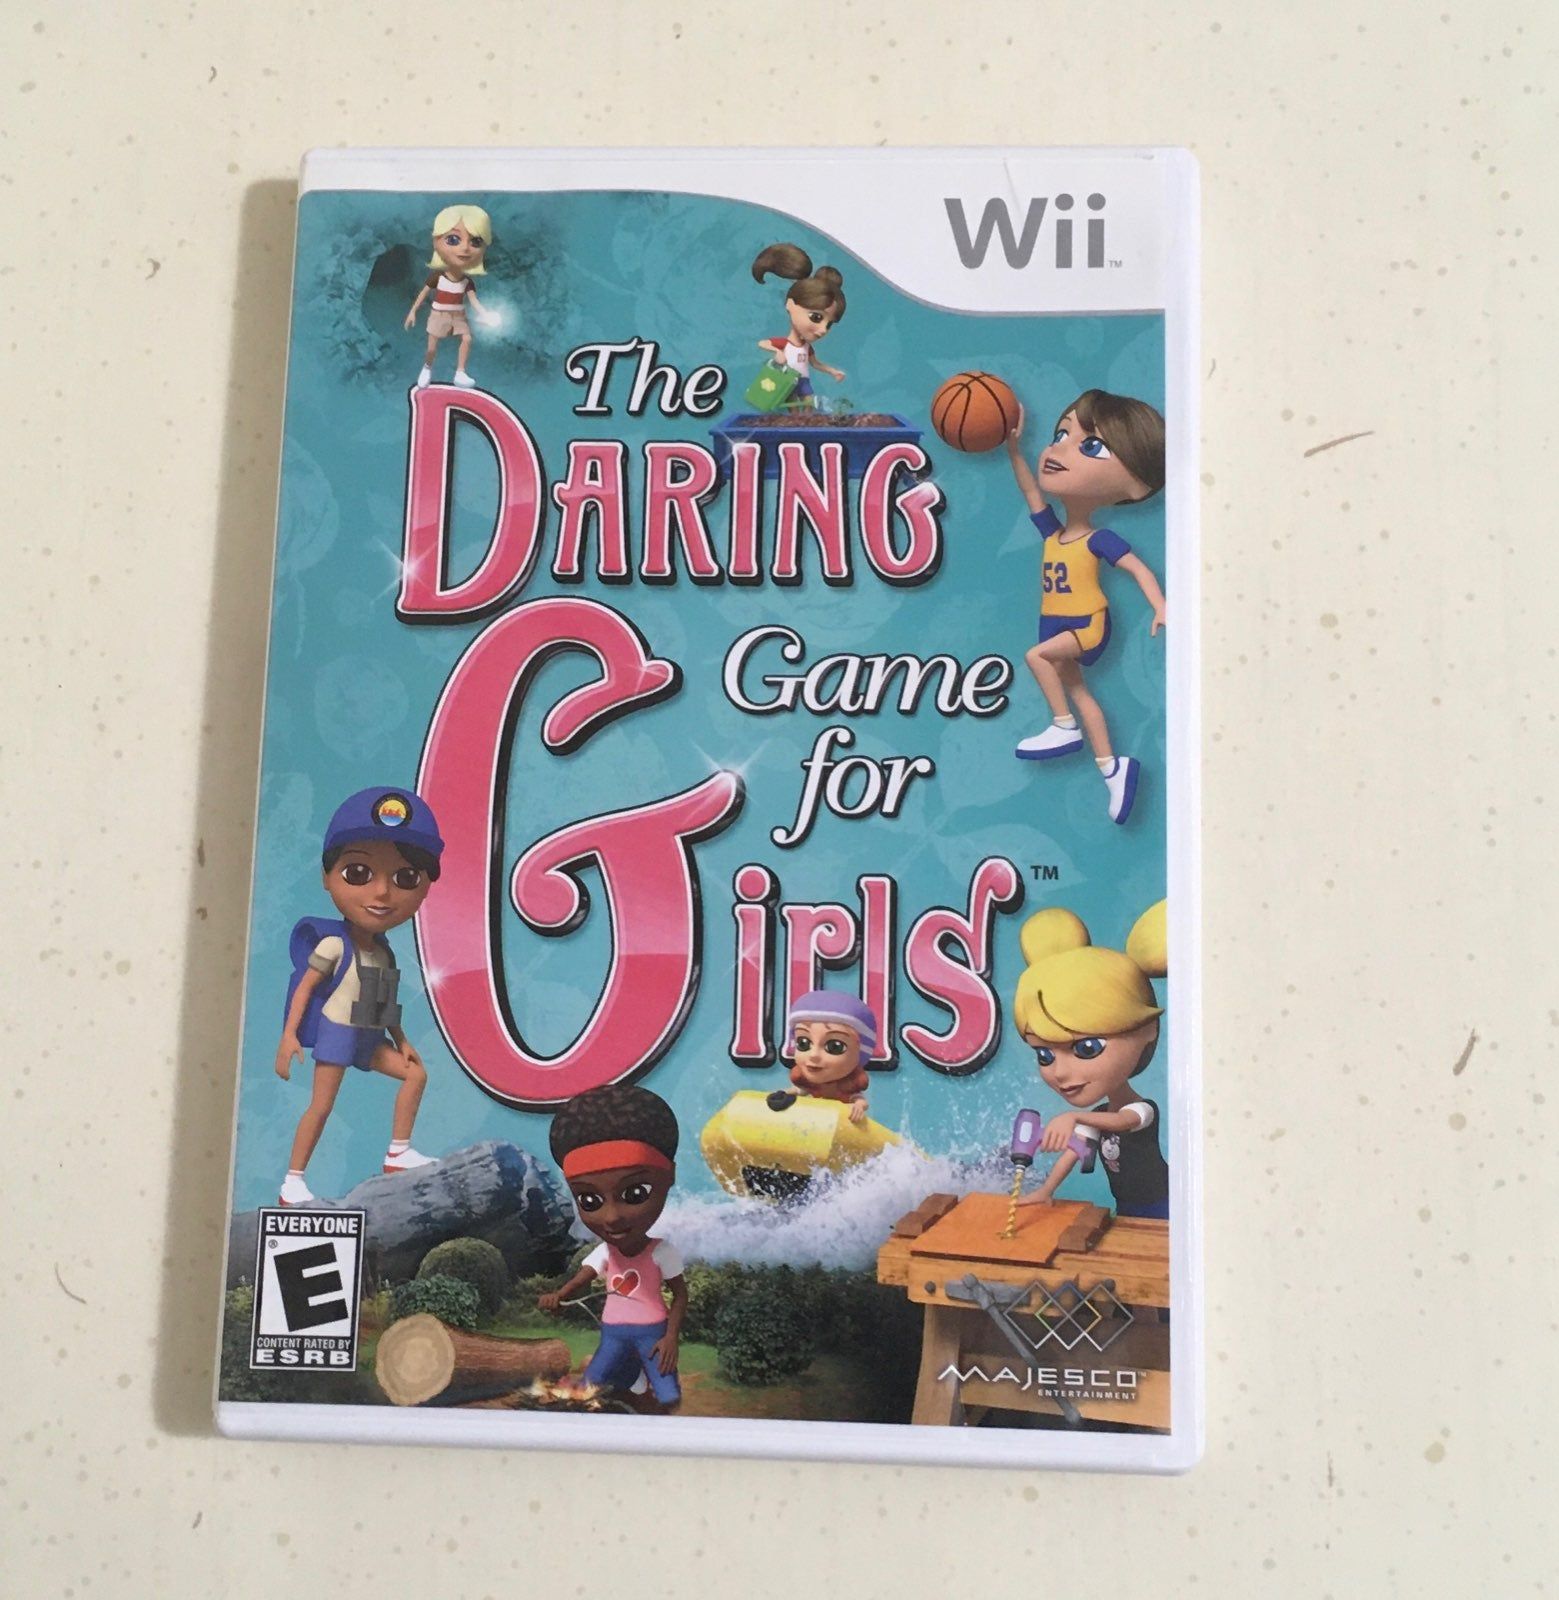 The Daring Game for Girls - Wii